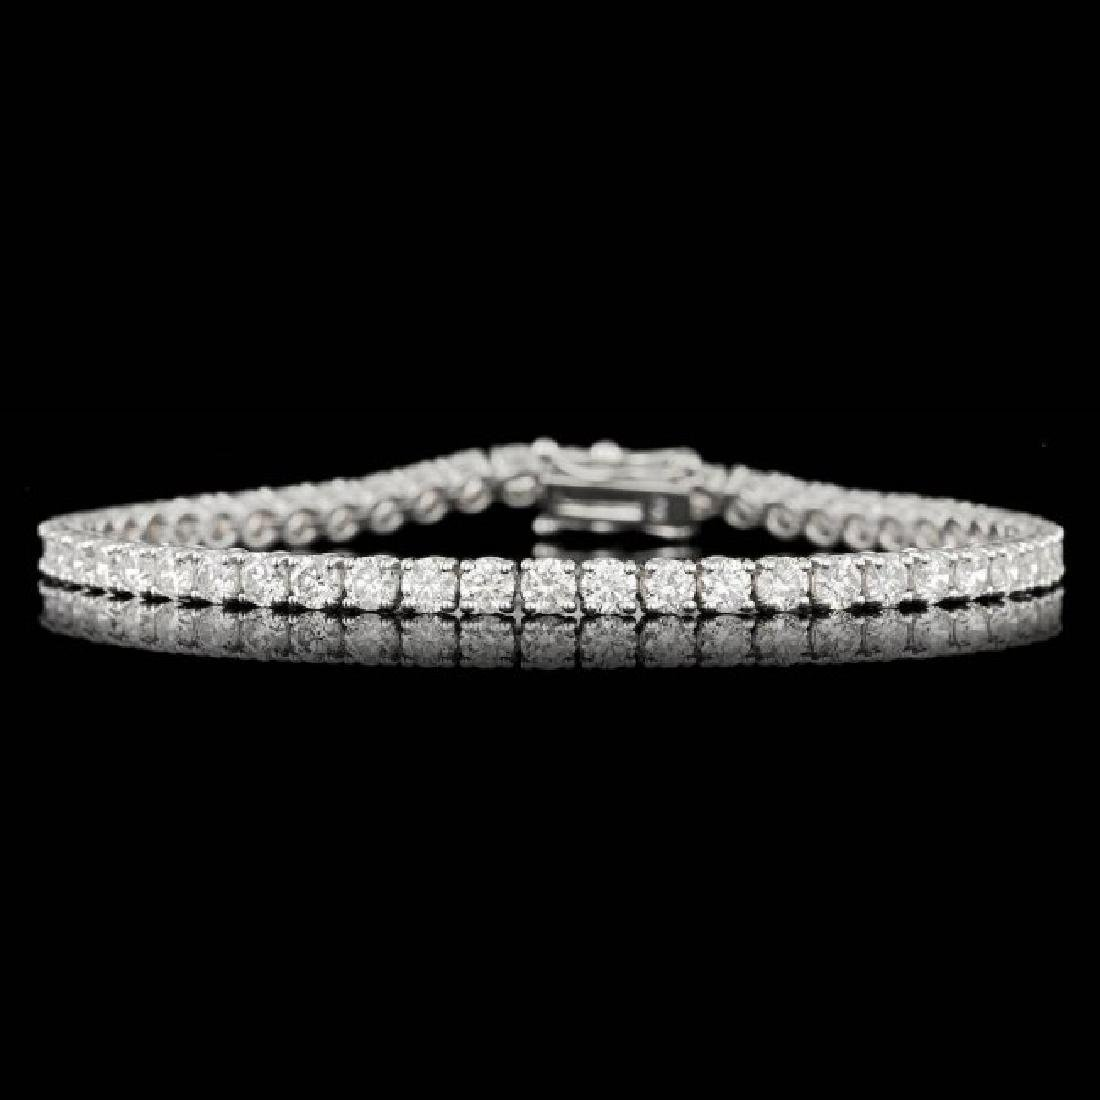 18k White Gold 6.55ct Diamond Bracelet